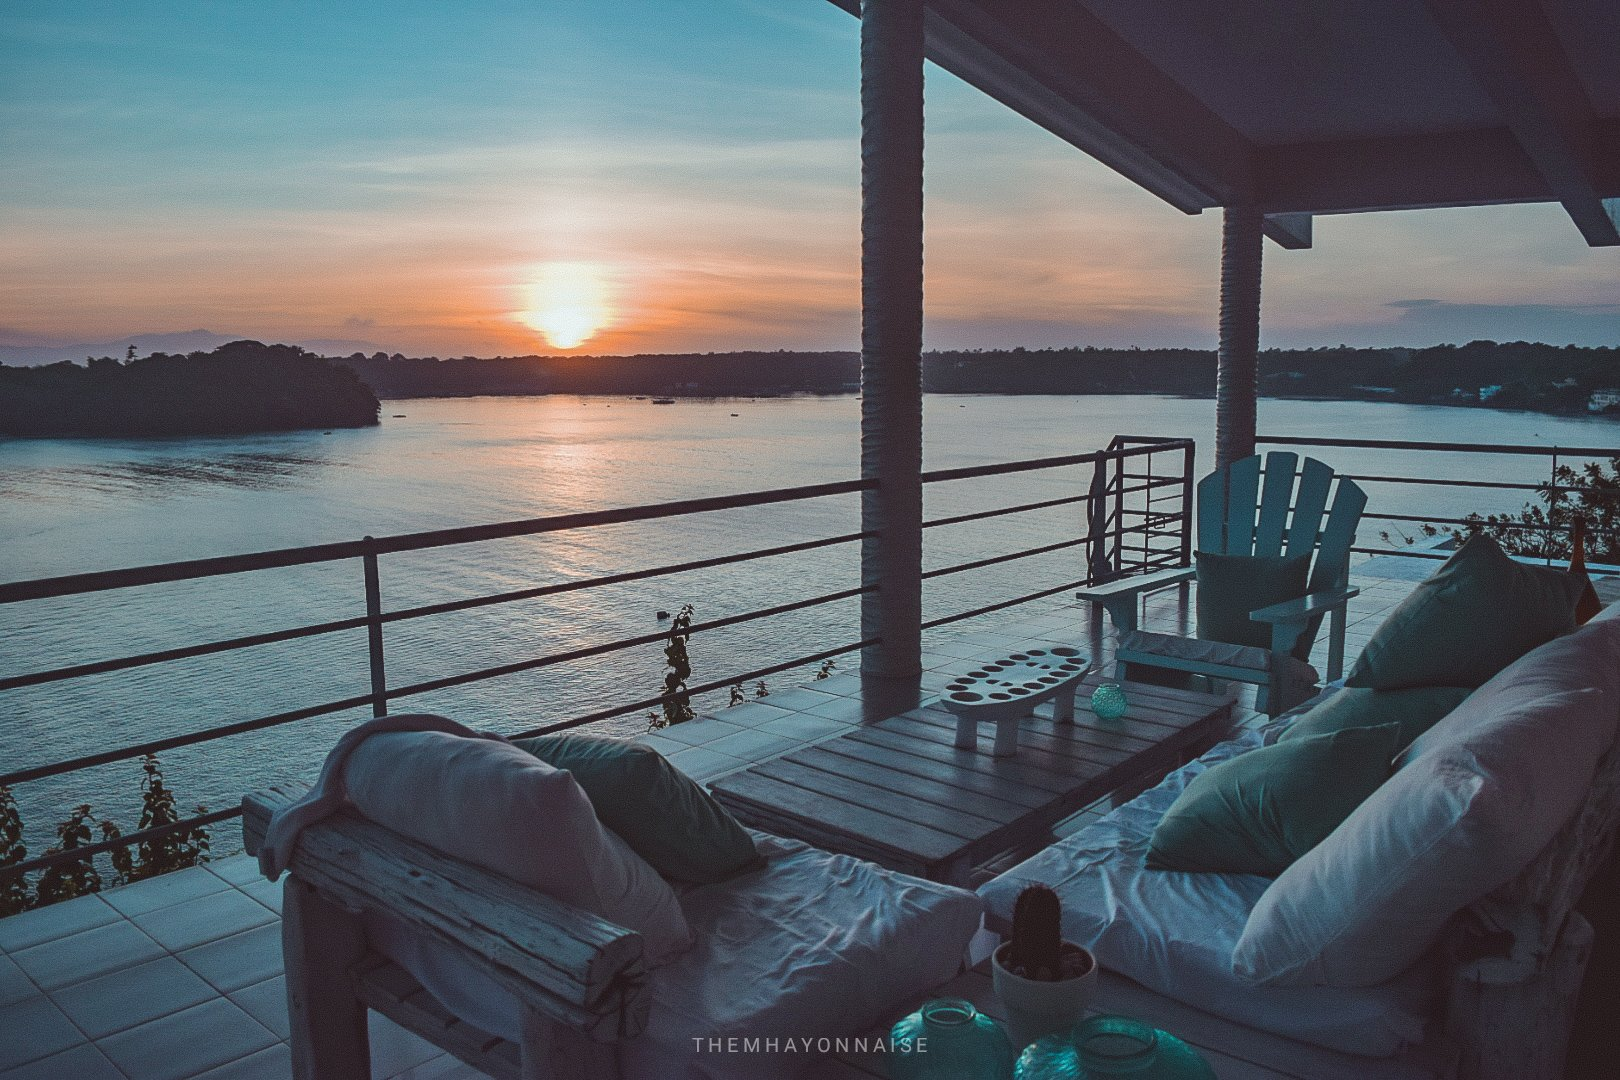 sundowners vacation villas bolinao | themhayonnaise